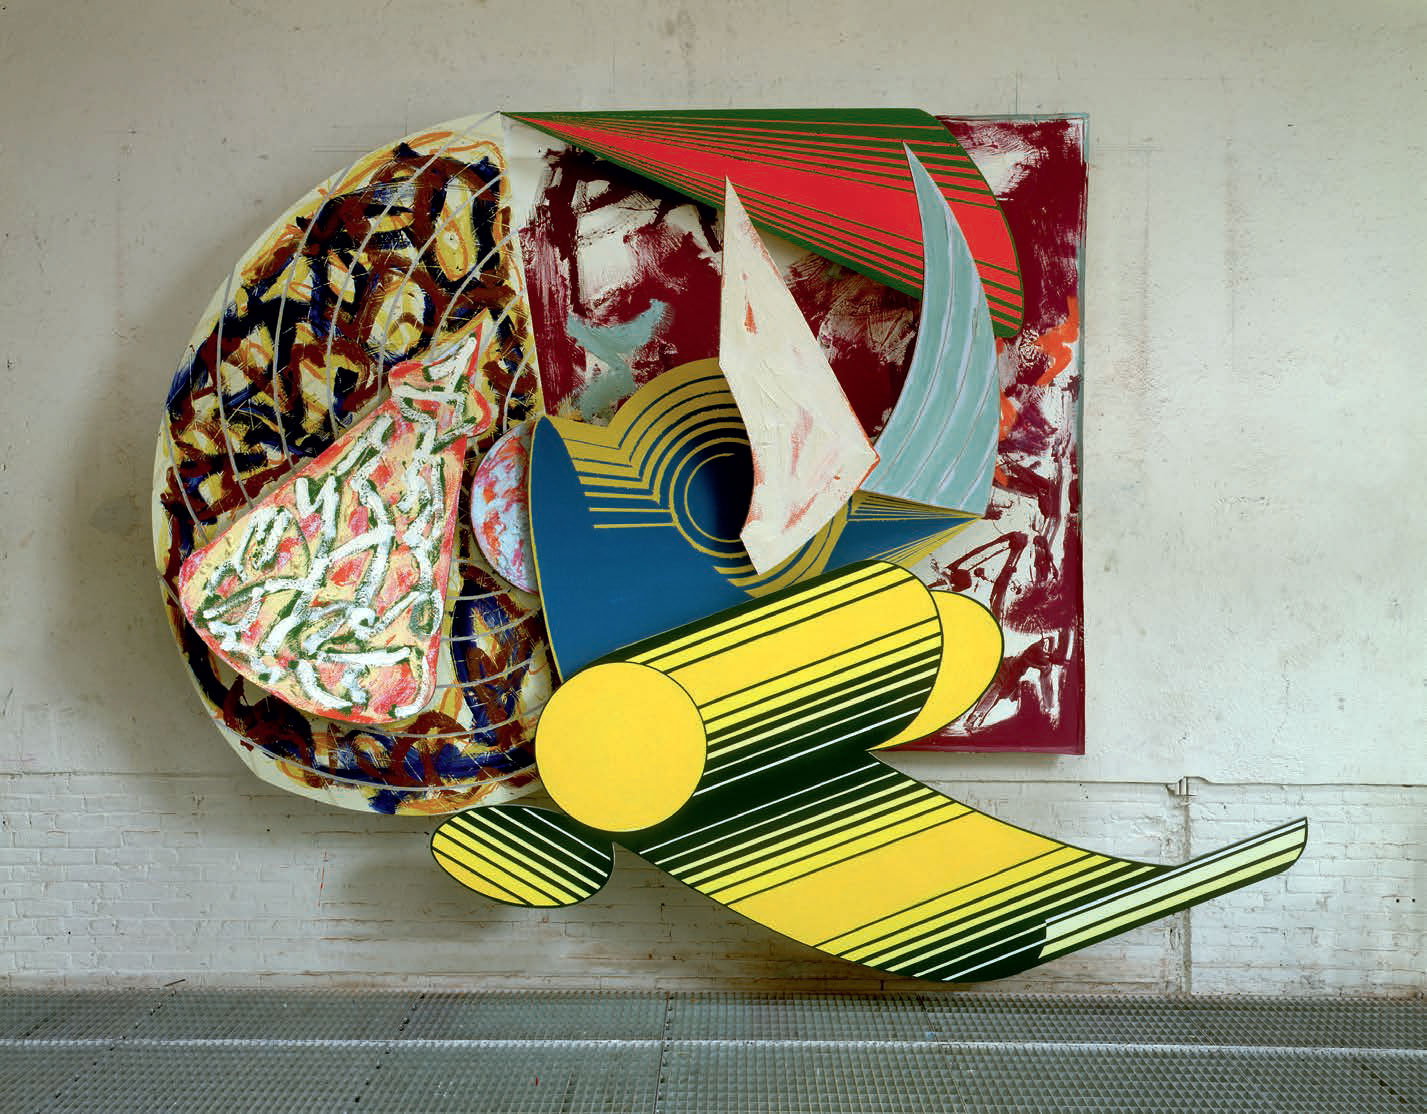 Giufà e La Statua Di Gesso (1984) by Frank Stella, from his Cones and Pillars series, as reproduced in our new book